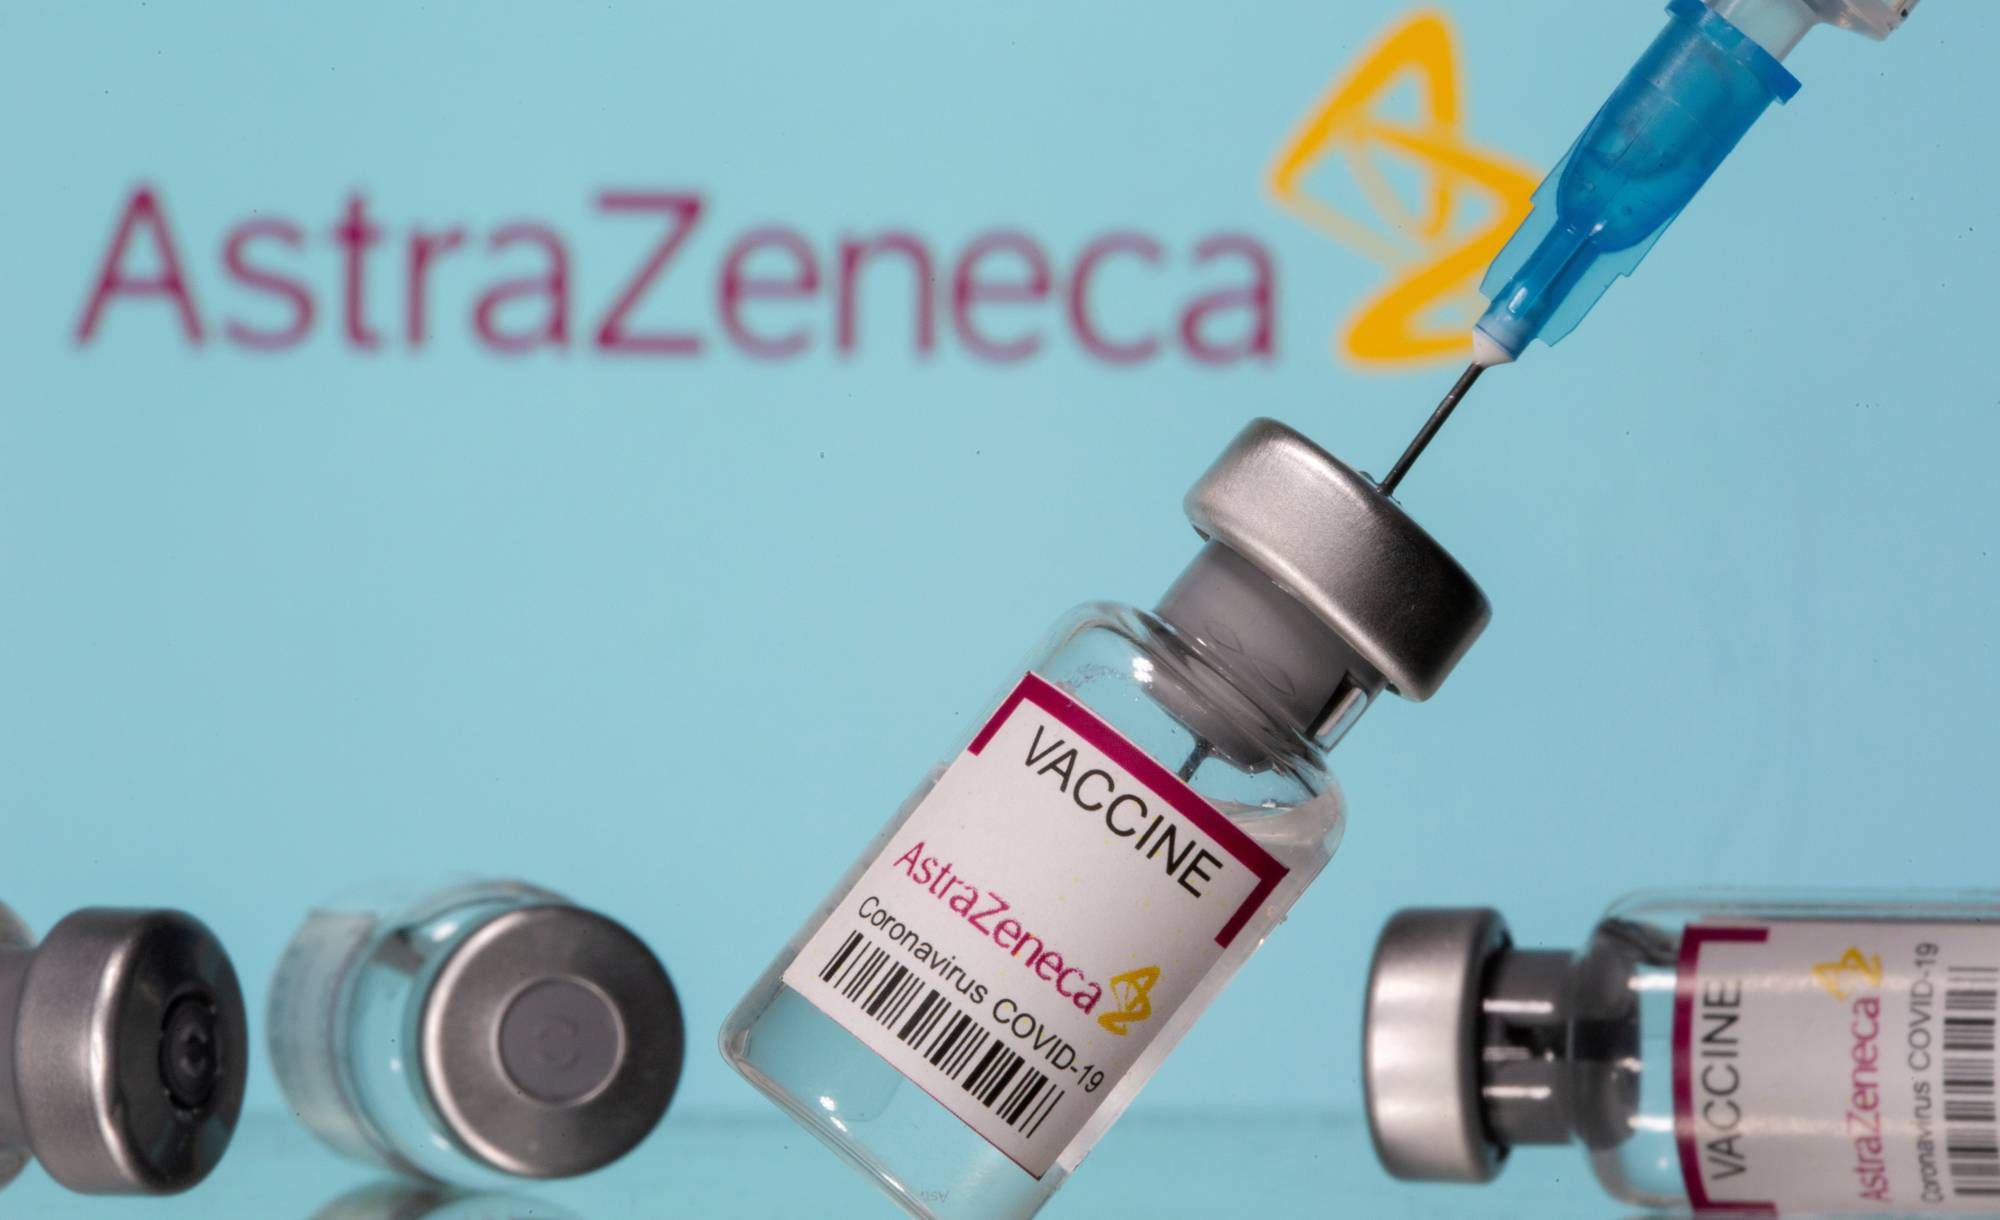 AstraZeneca PLC's antibody drug was found to be effective in treating mild COVID-19 symptoms in a trial, providing another key tool in the fight against COVID-19. | REUTERS